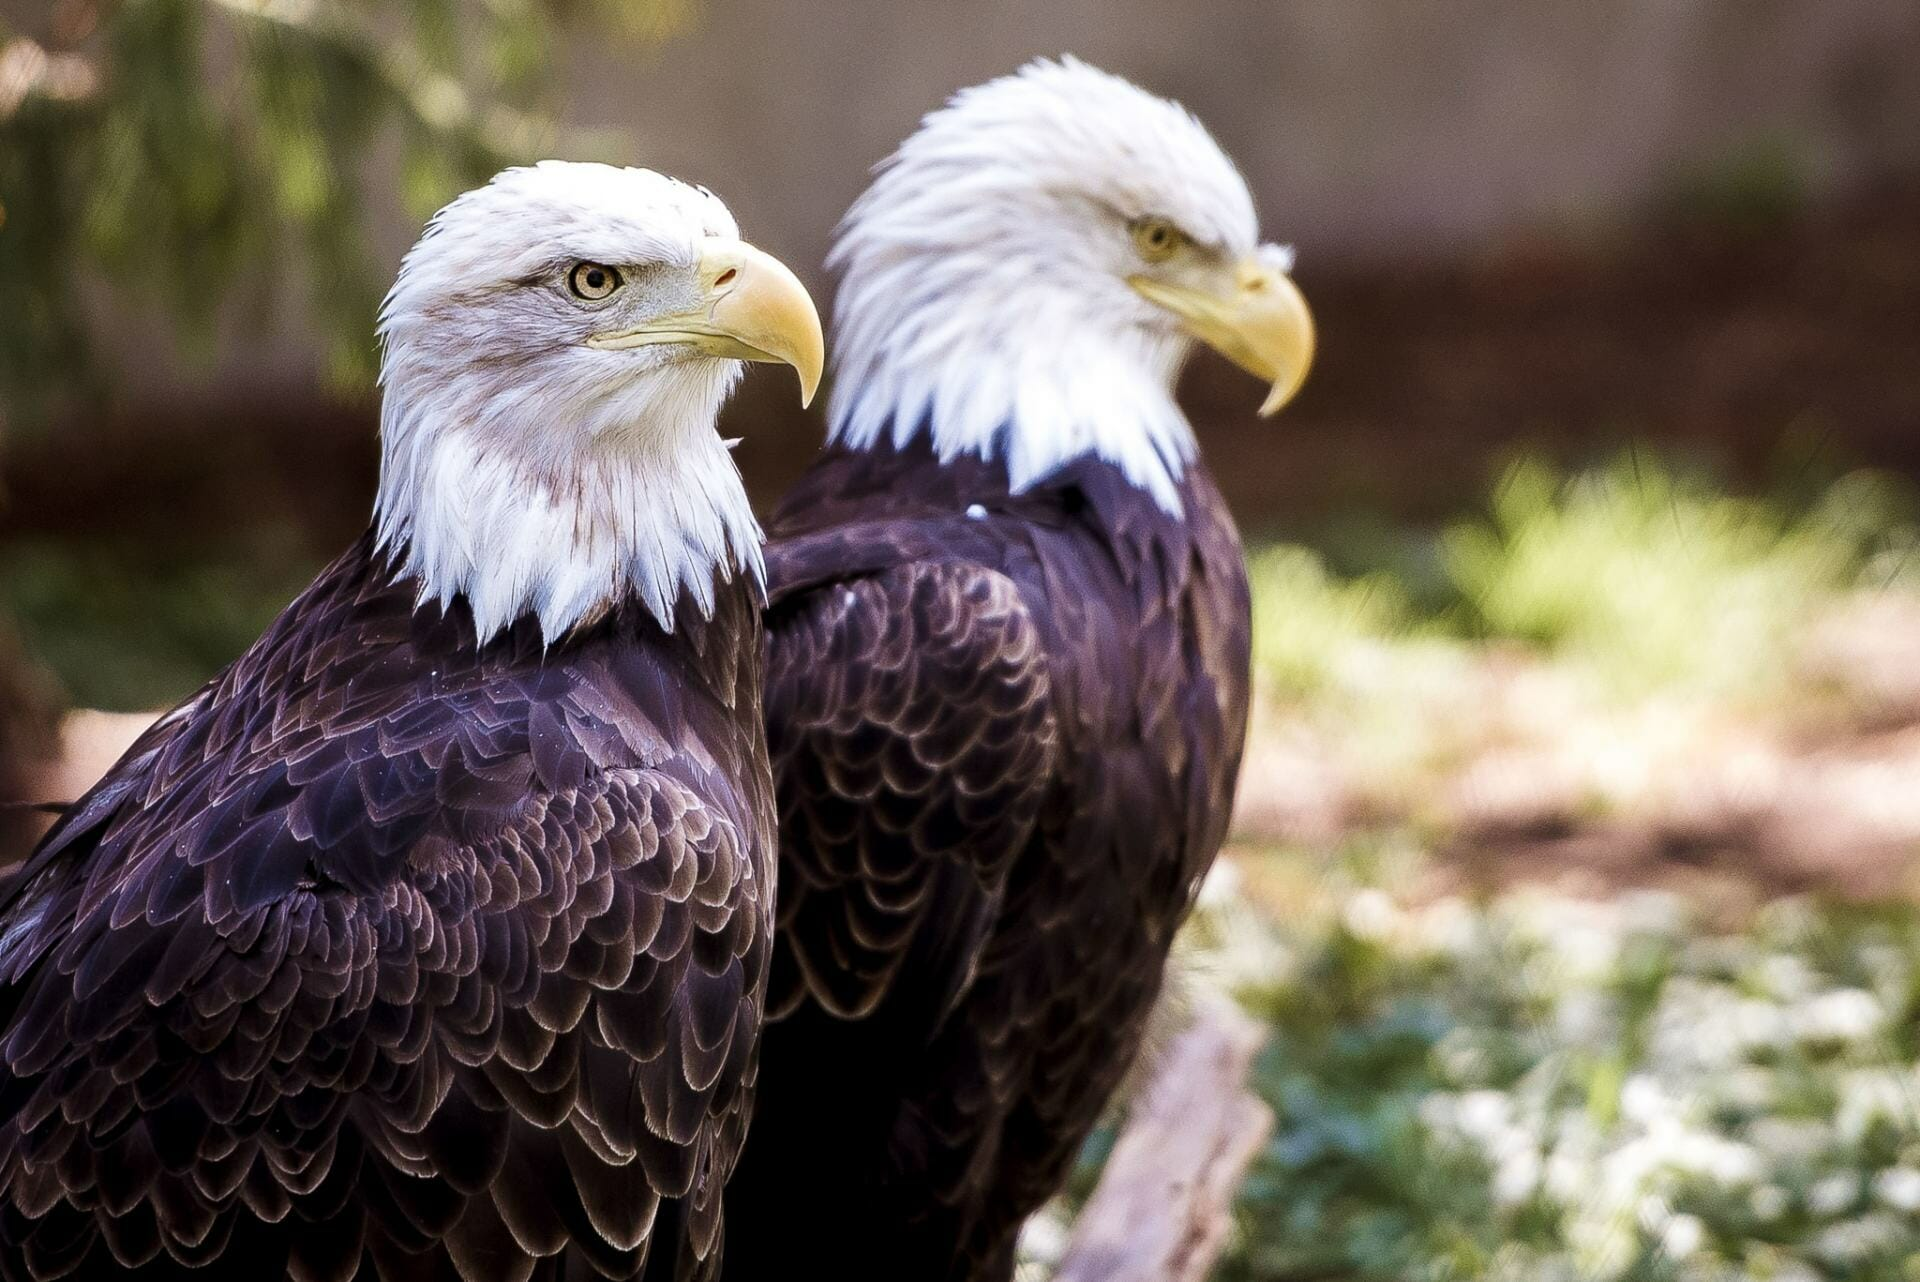 Eagle watching is one of the best things to do in Squamish